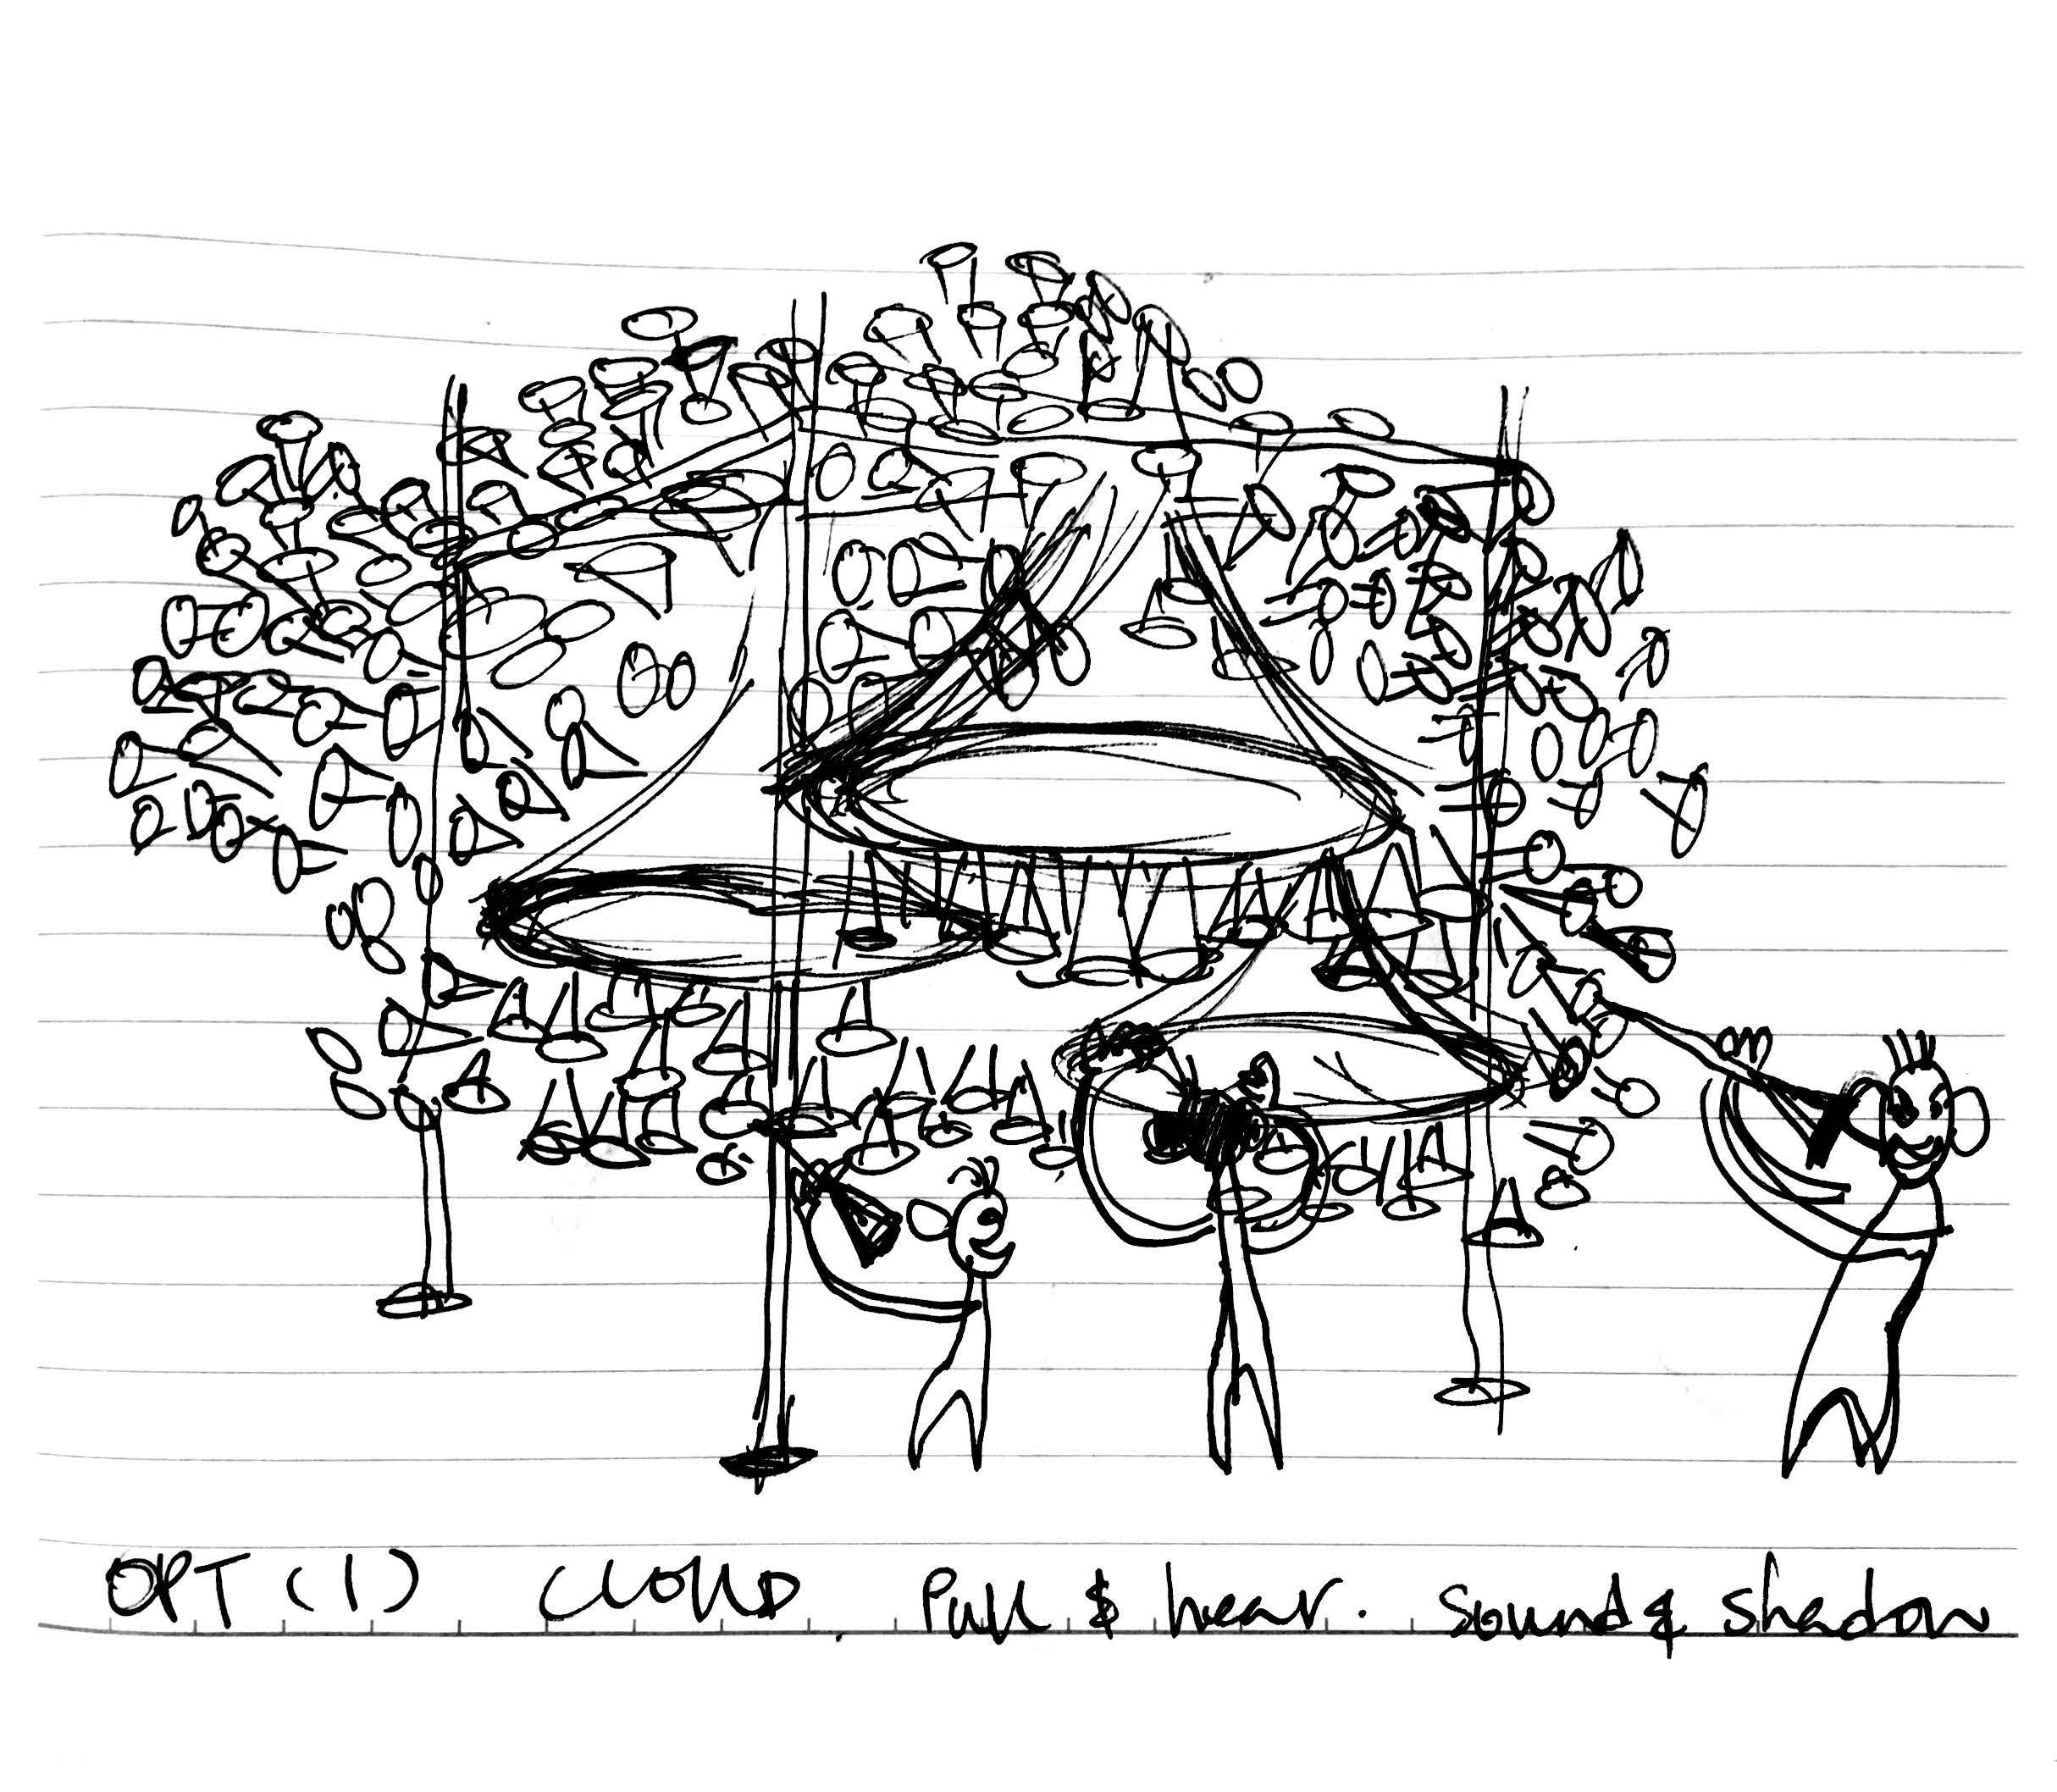 Sketch for ' Trumpet Cloud'  installation - pull to hear, sound and shadow  Concept by Studio Lux